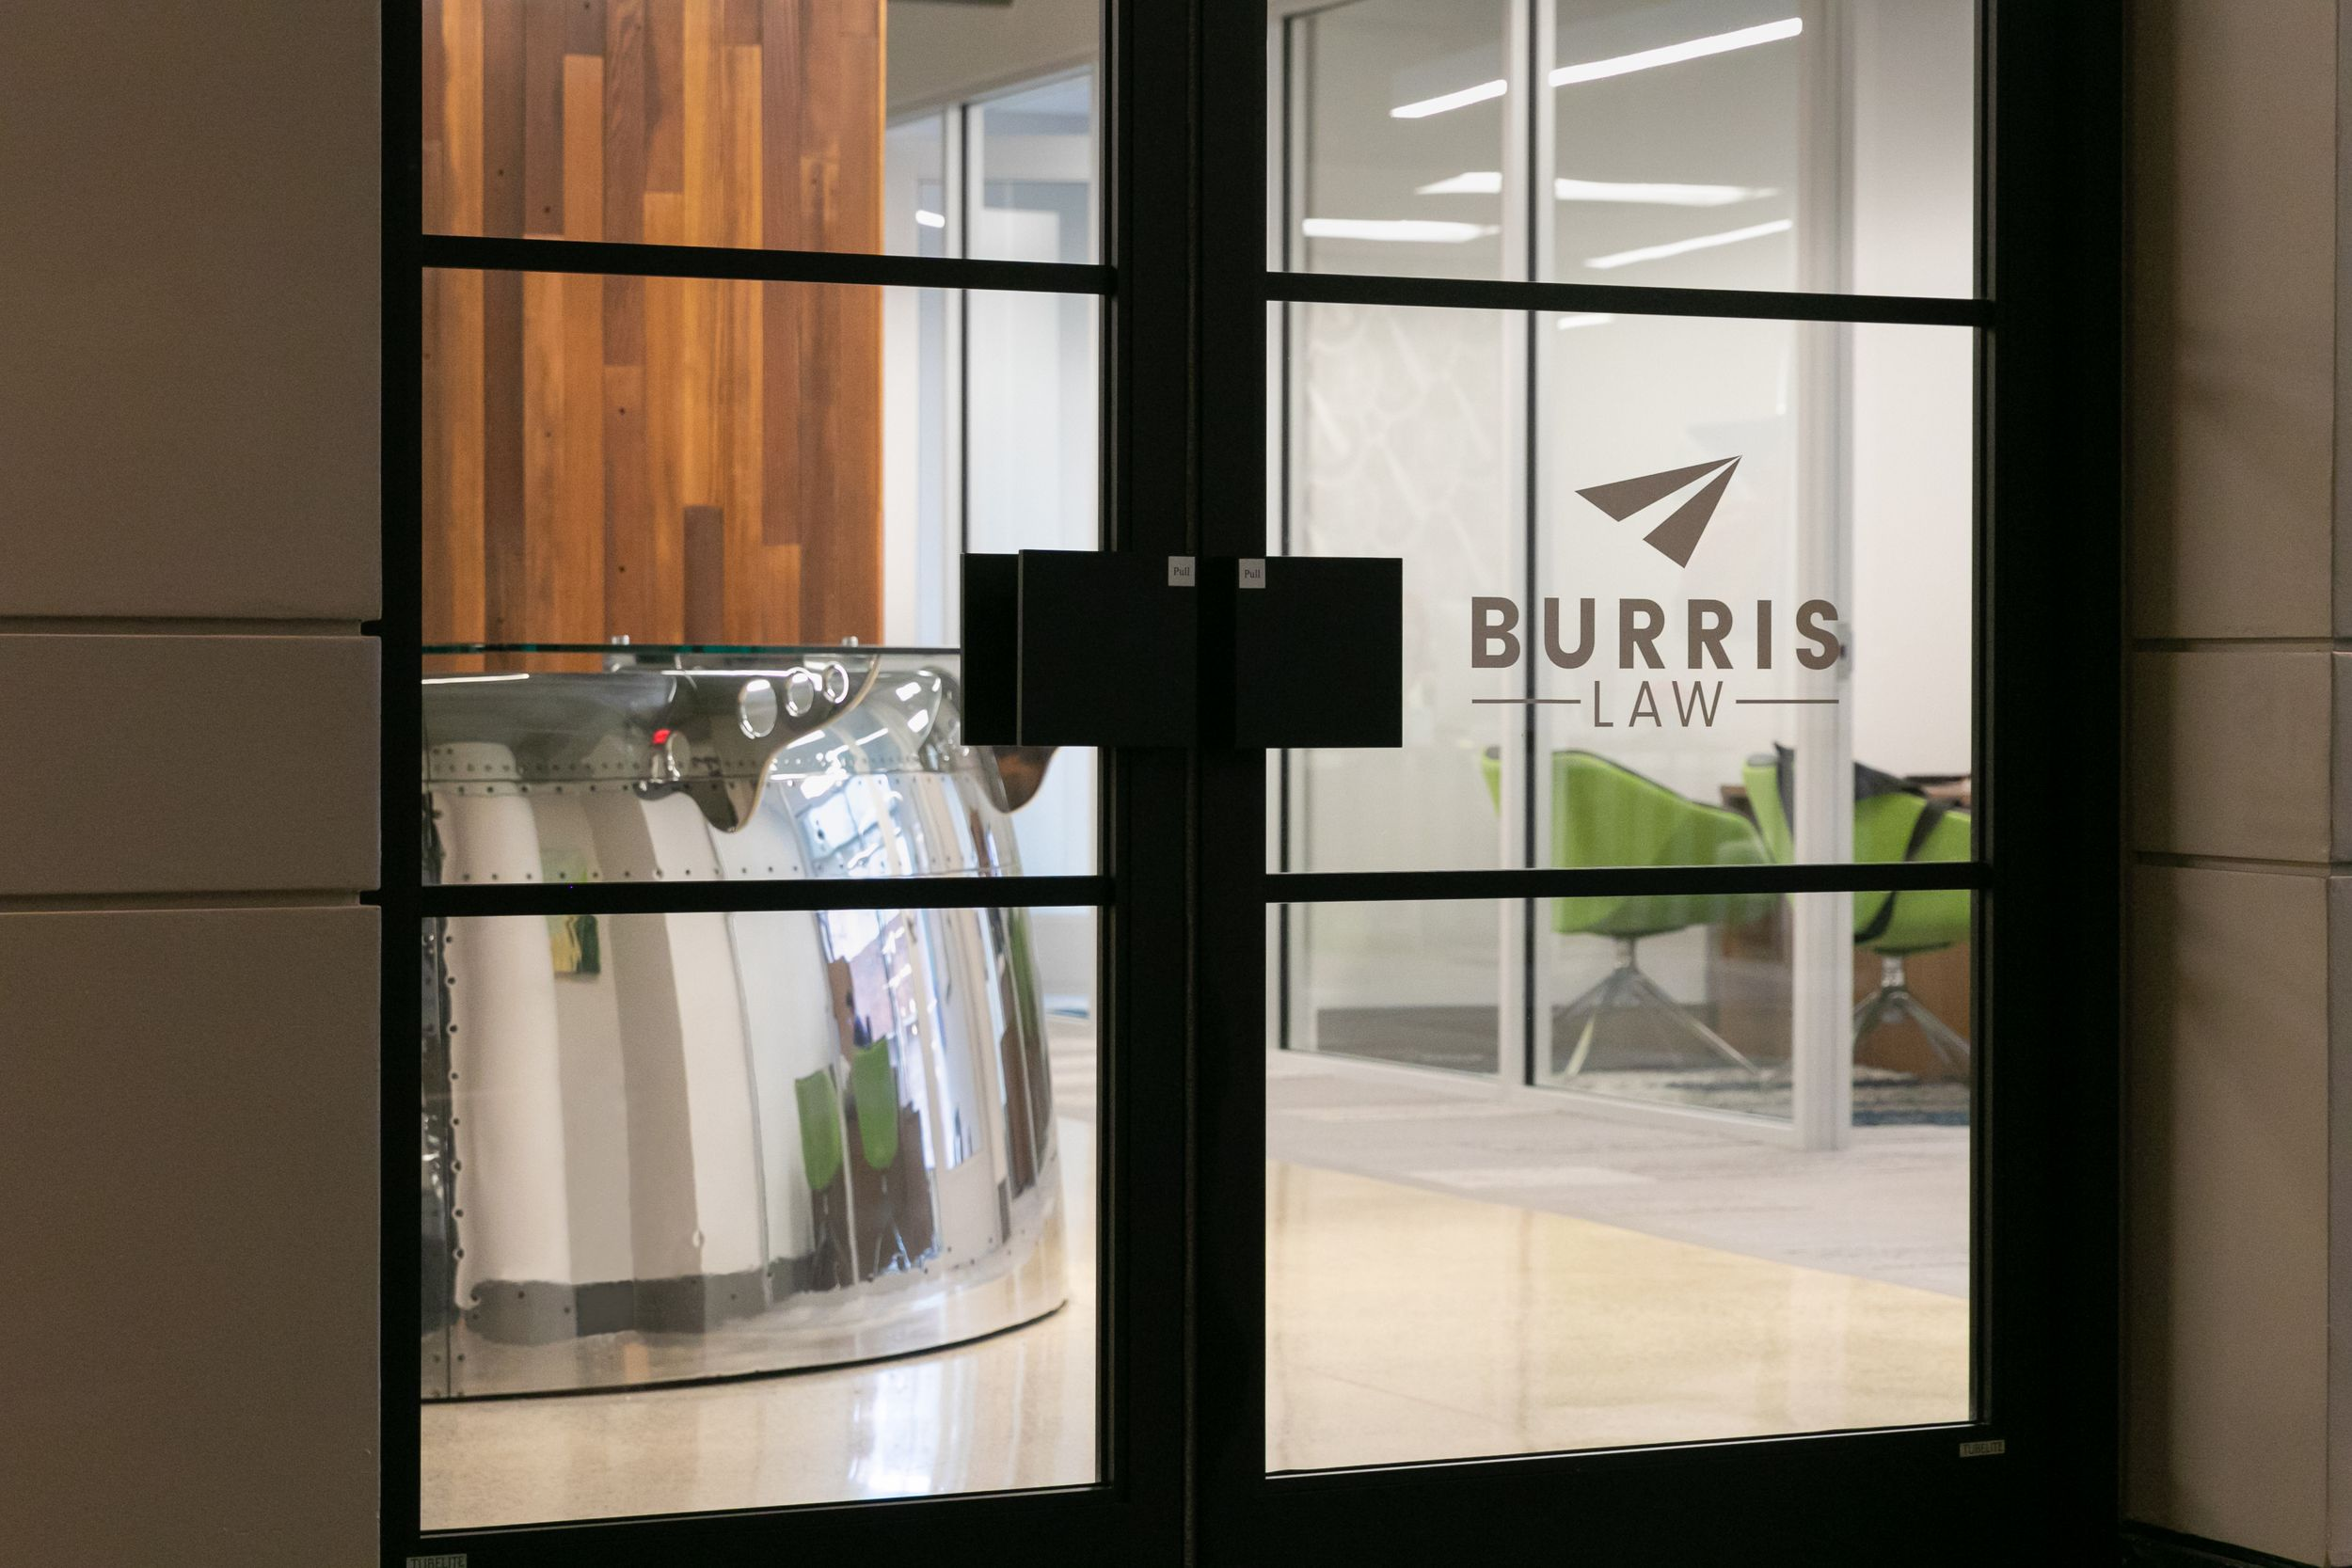 Close-up image of glass doors welcoming visitors into the space with the Burris law logo on the door.